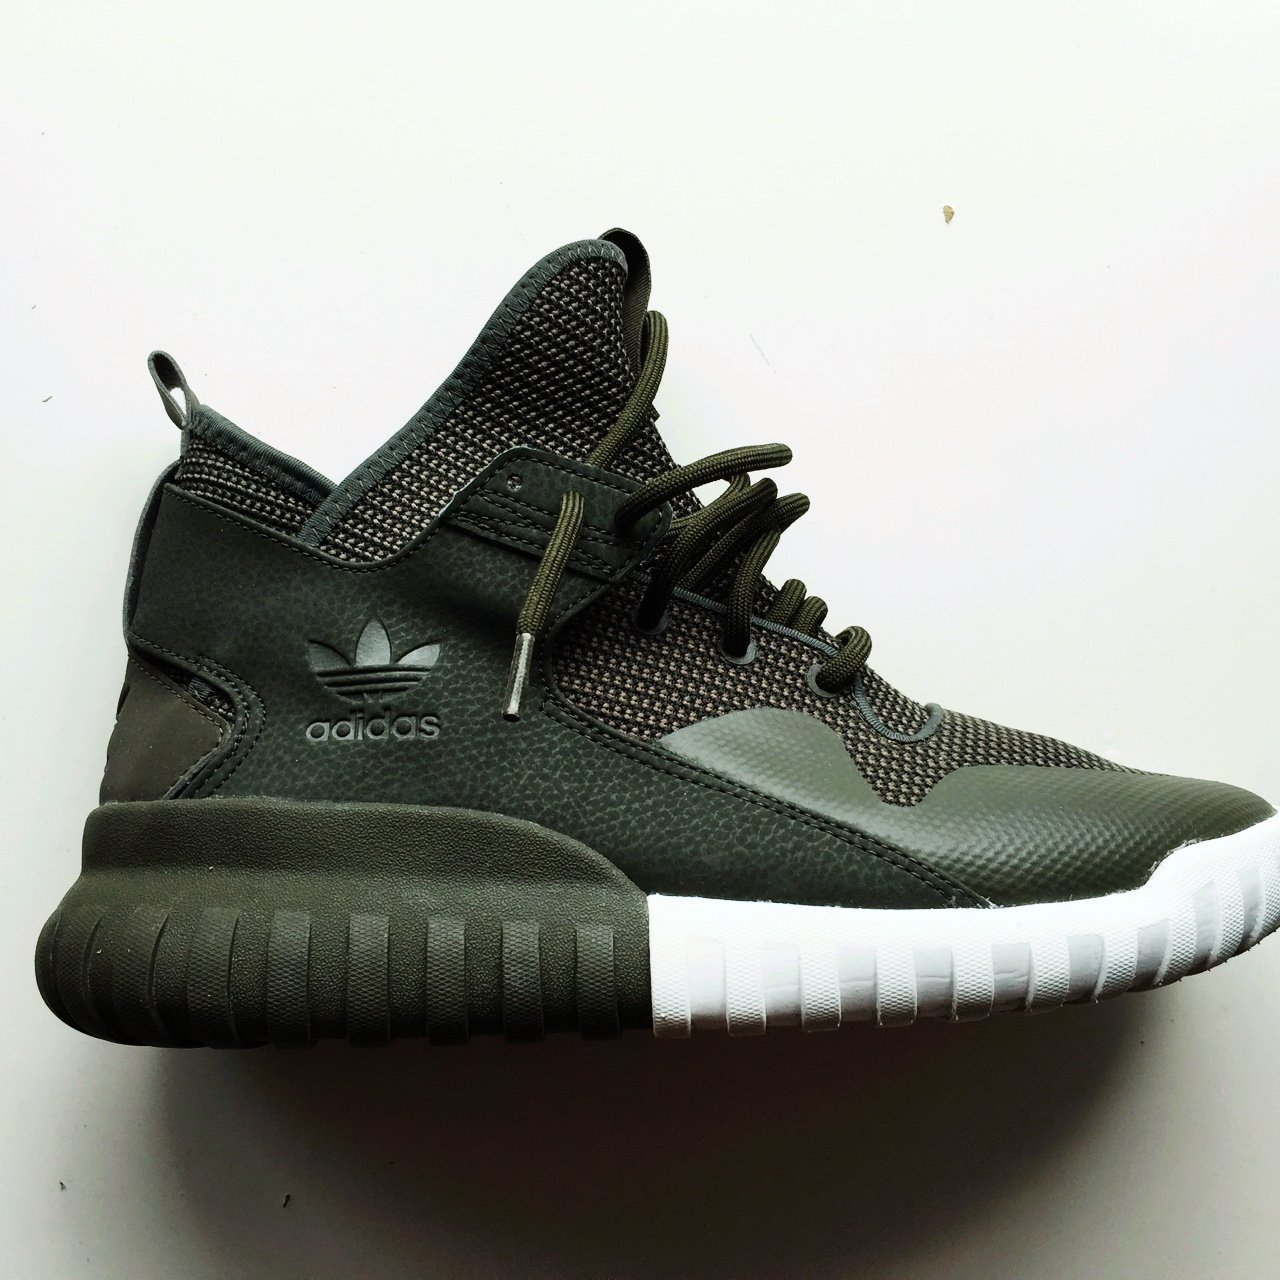 Adidas Tubular X olive green comes without a box have been a - Depop 81c62194d9f0